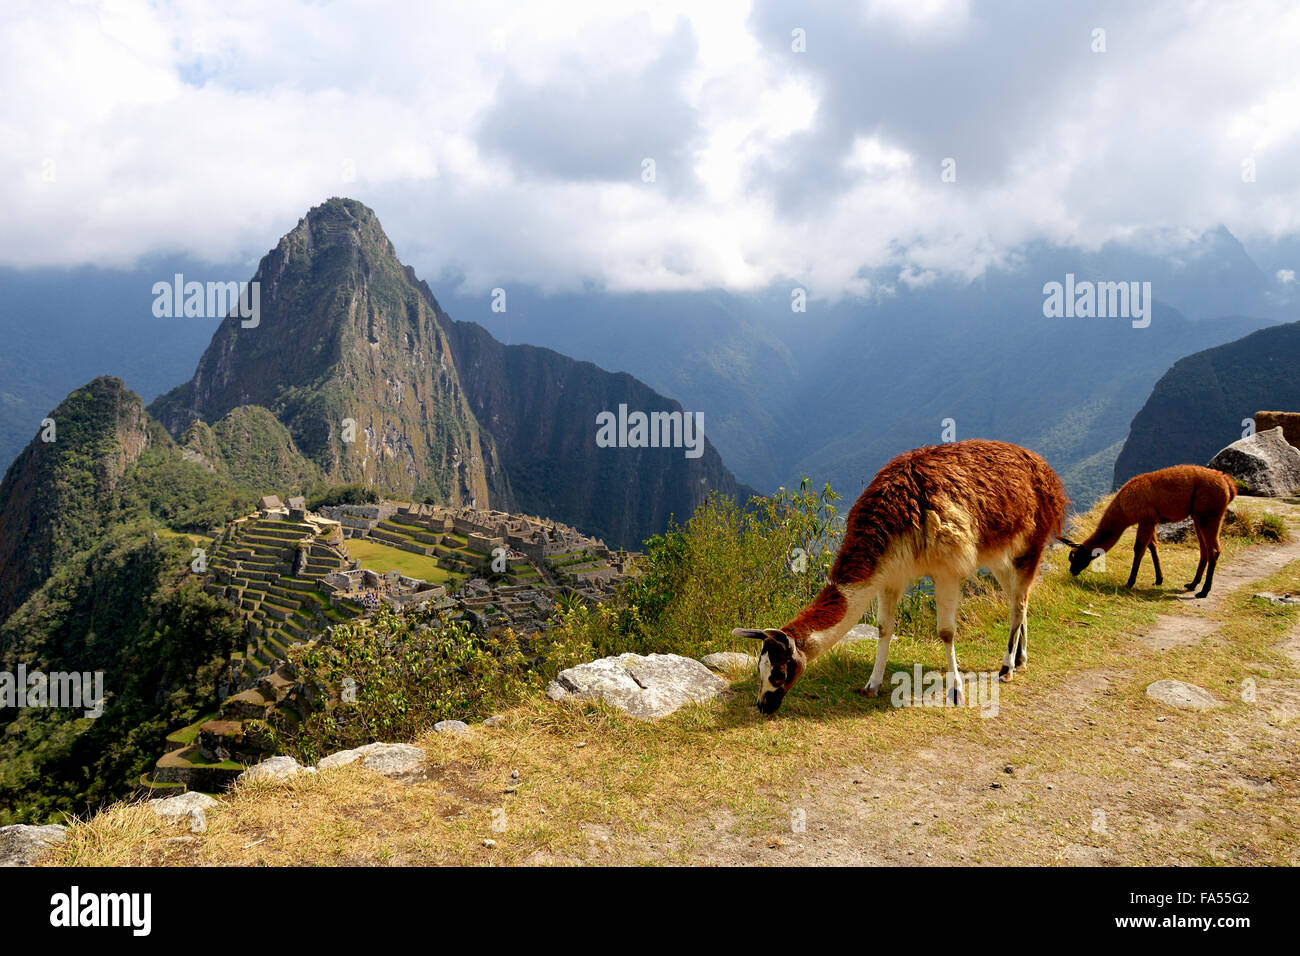 Llama (Lama glama) with juvenile in front of ruined city, Inca city of Machu Picchu, Huayna Picchu Mountain behind - Stock Image